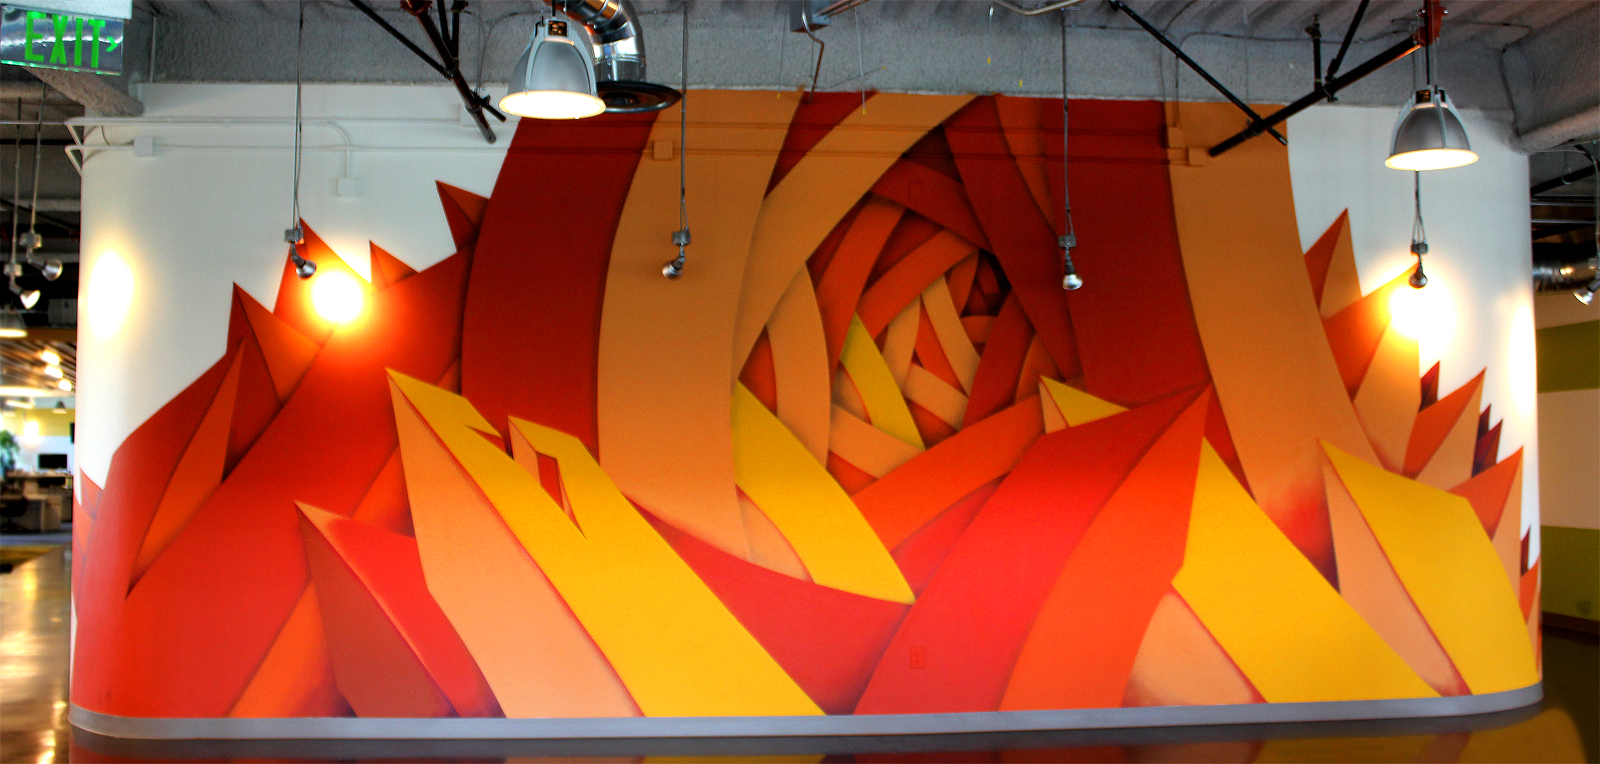 Apexer was commissioned to create a monochromatic mural for their San Francisco office